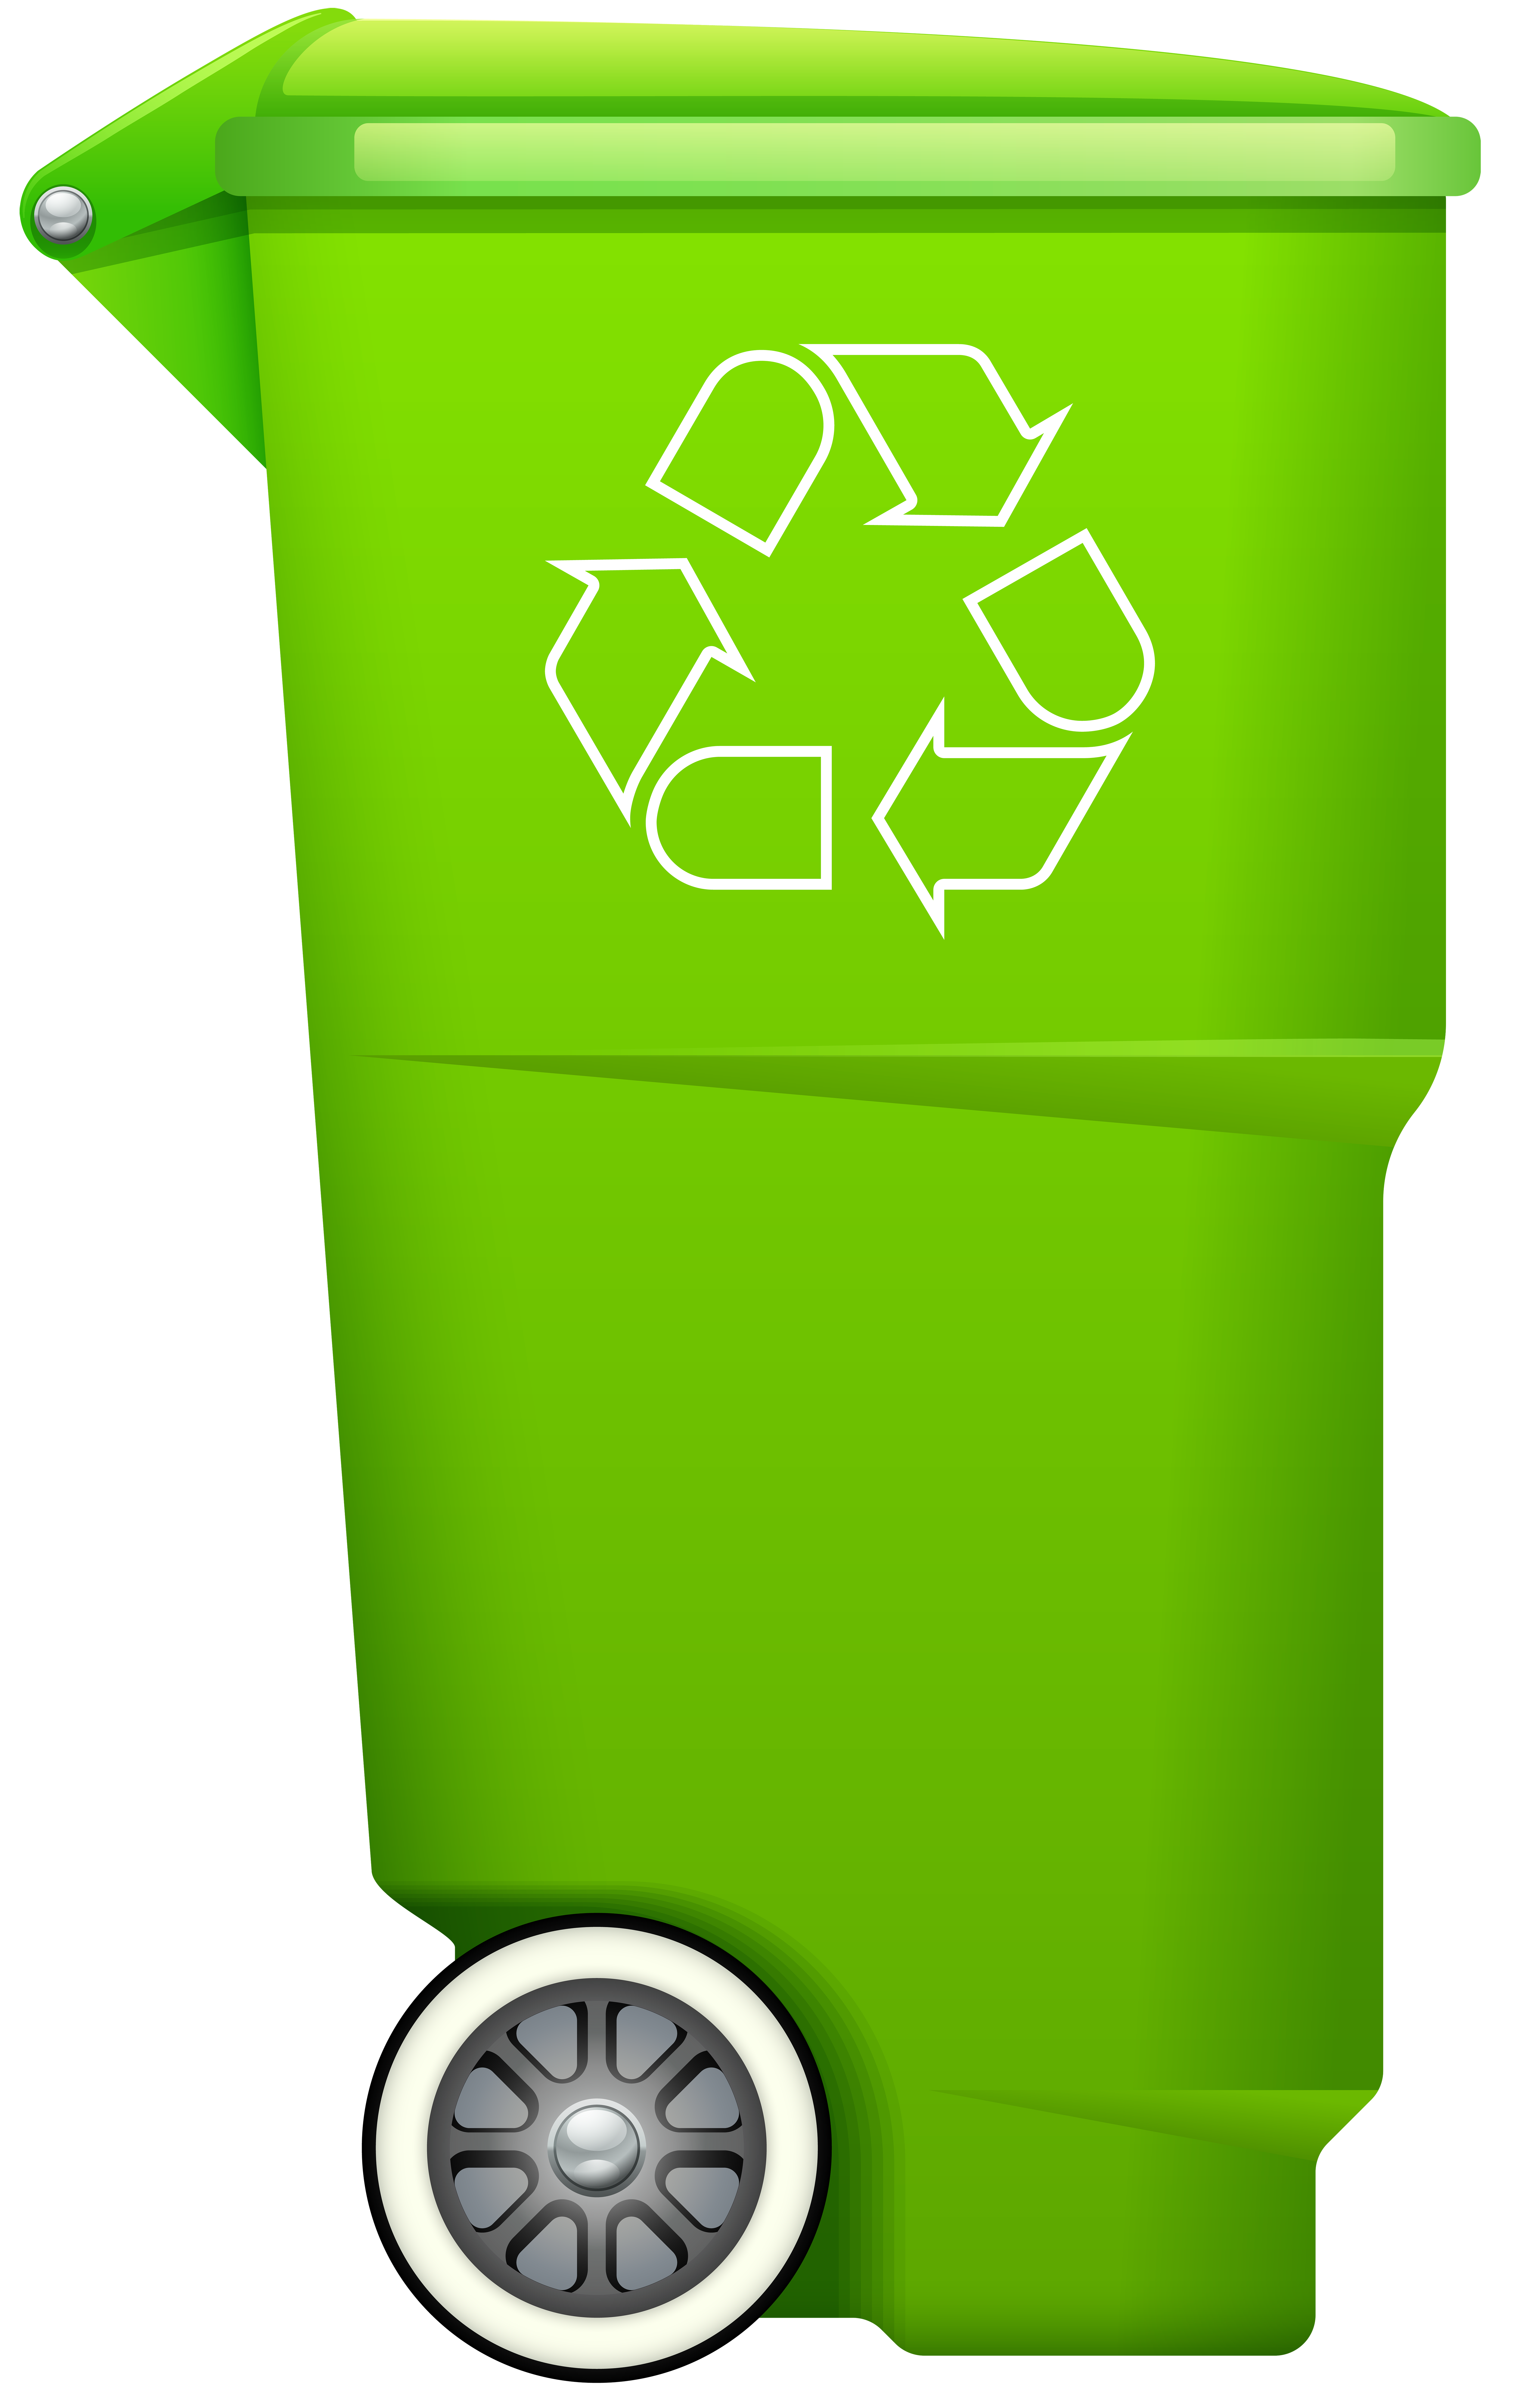 clip art royalty free stock Trashcan clipart recycling box. Garbage trash bin with.